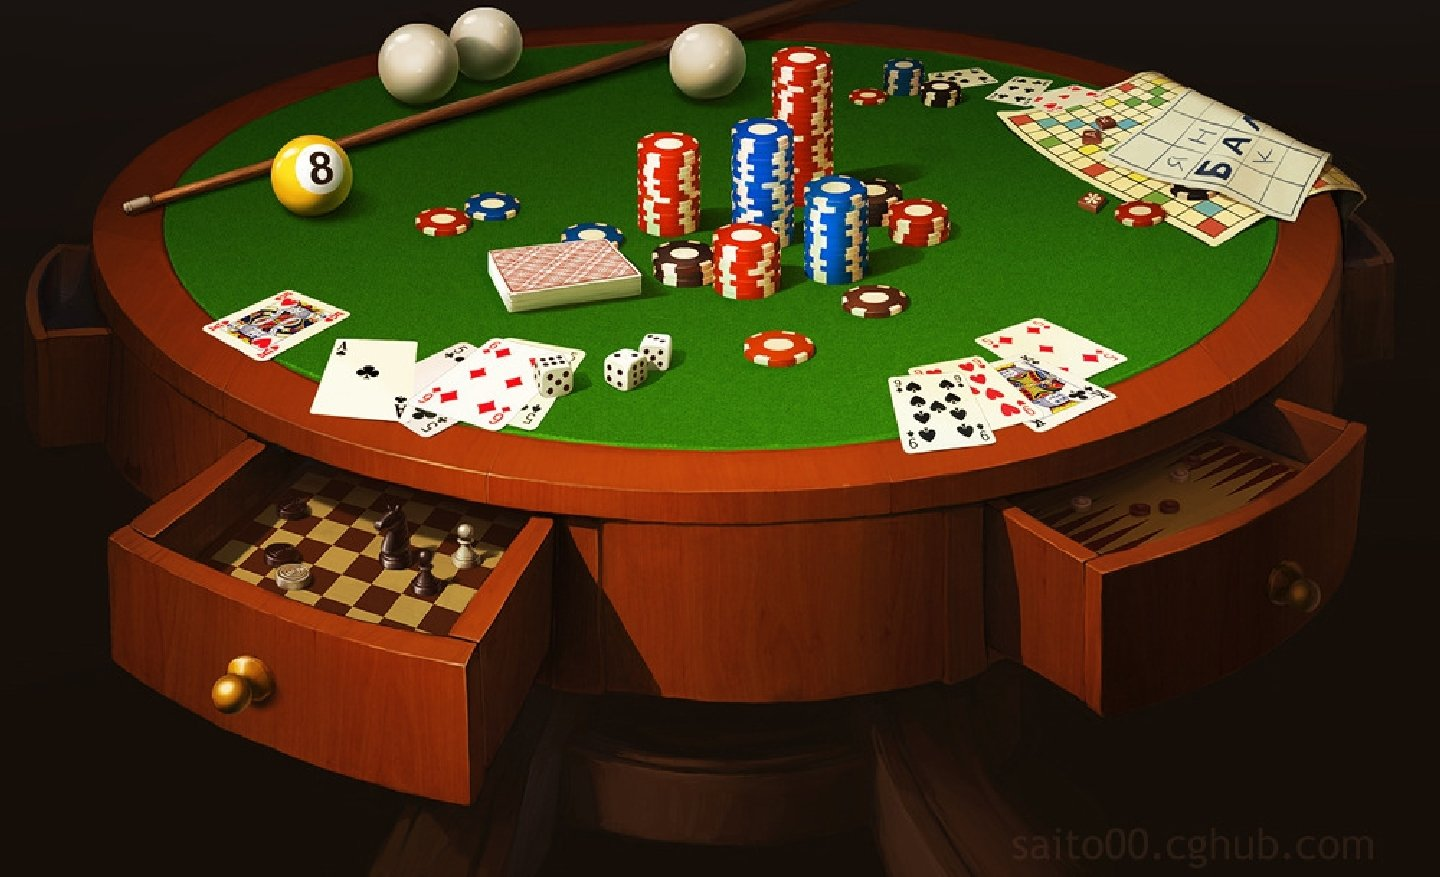 Reasons for Players Getting Attracted to Poker Online